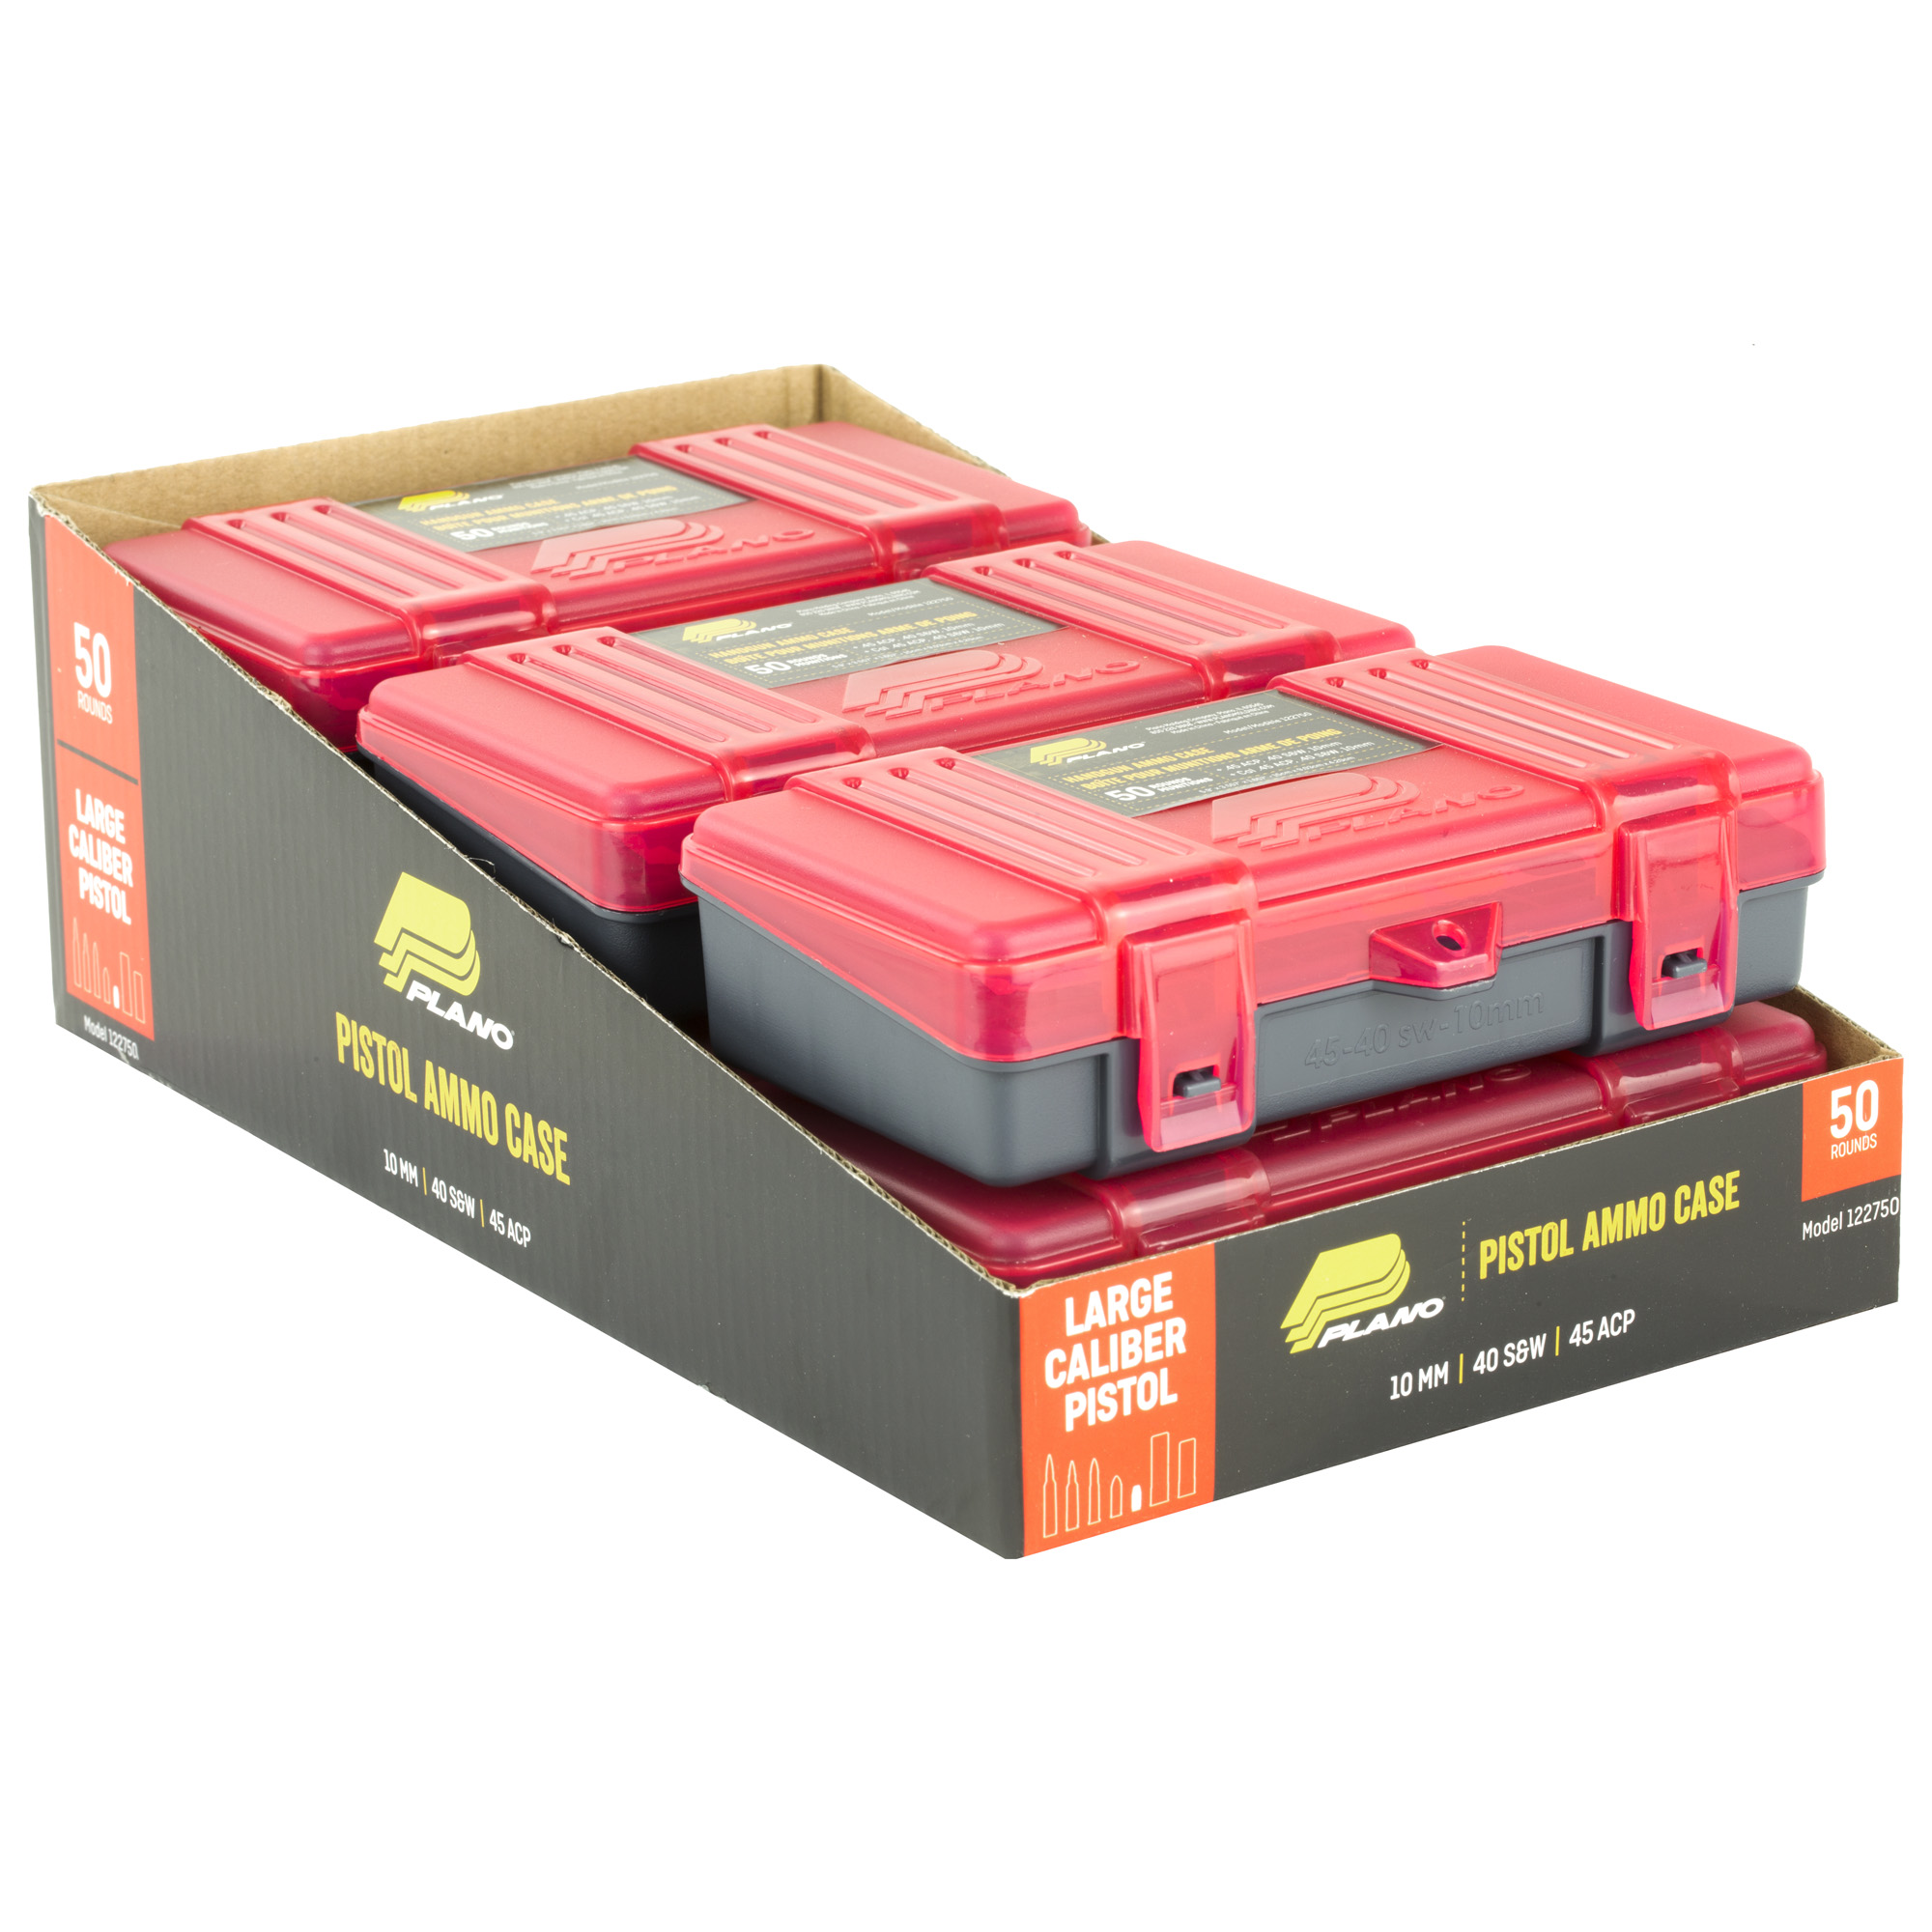 """Securely store handgun ammunition with this hard plastic case. This durable storage box features dependable closures and deep individual slots to keep ammo organized"""" protected and accessible."""